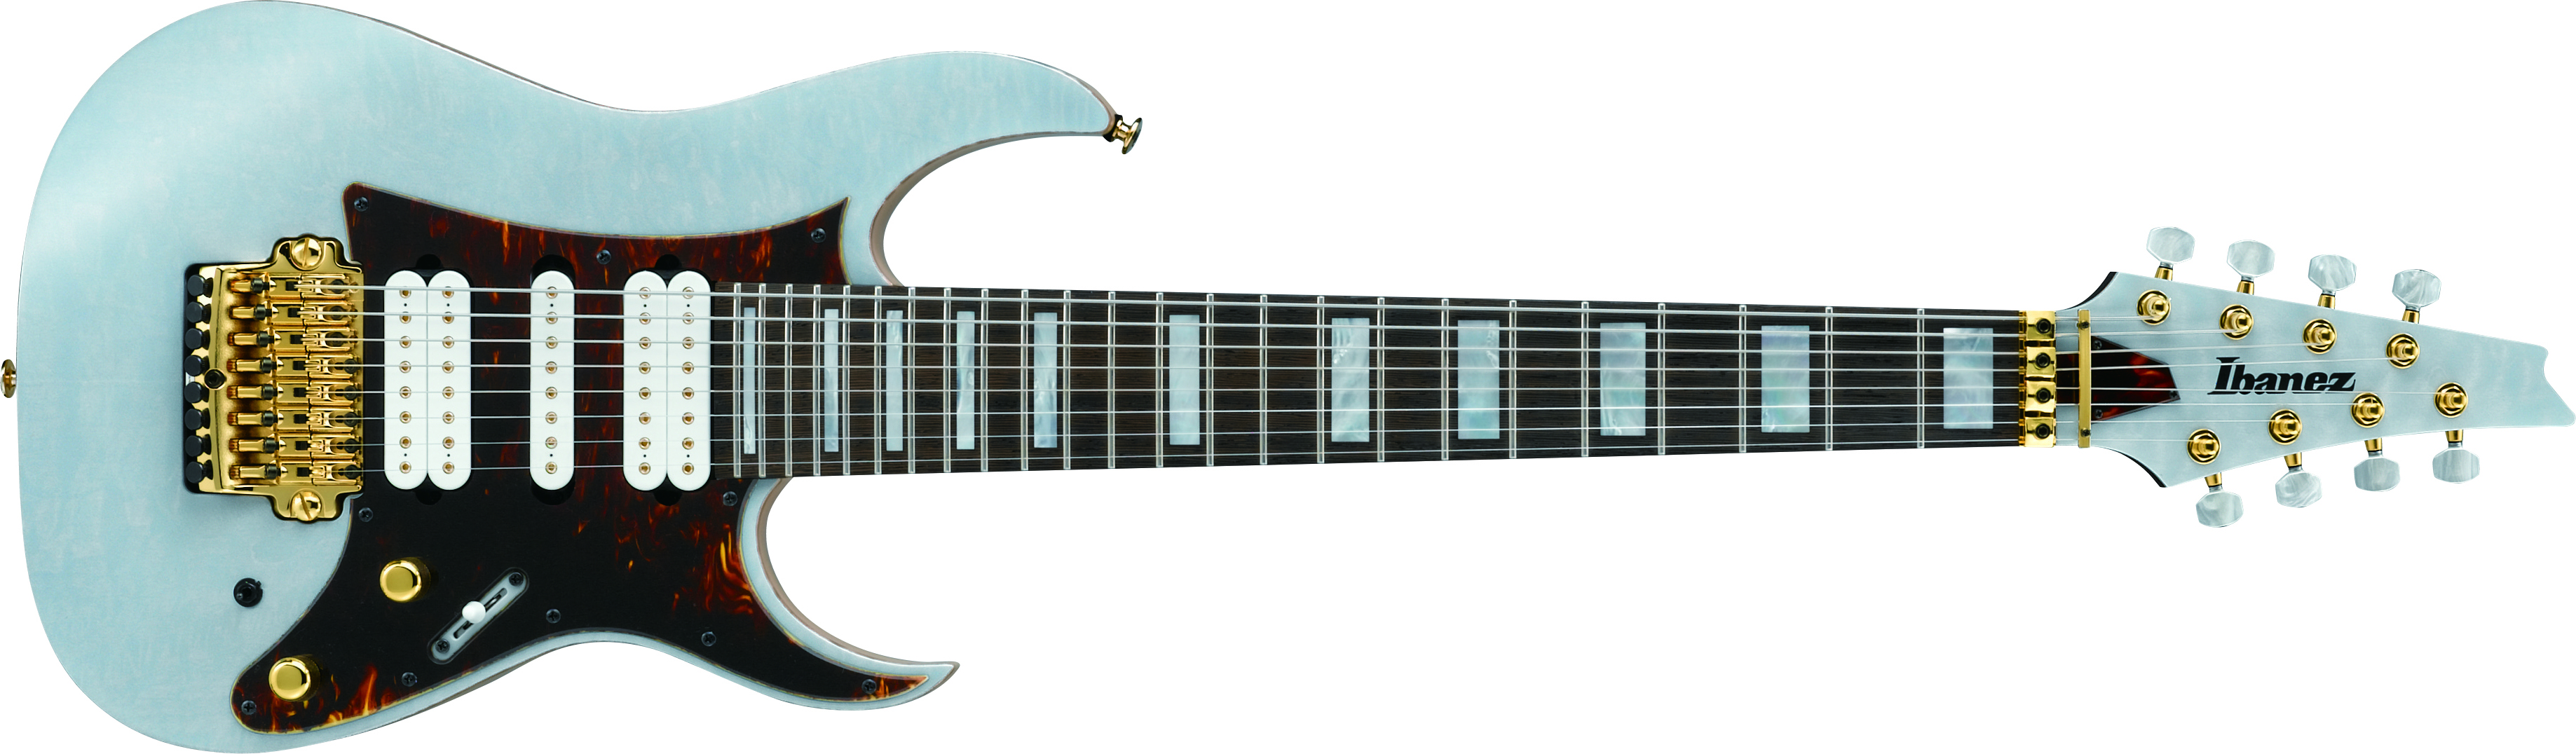 Review Ibanez Tam100 Tosin Abasi Signature Eight String And